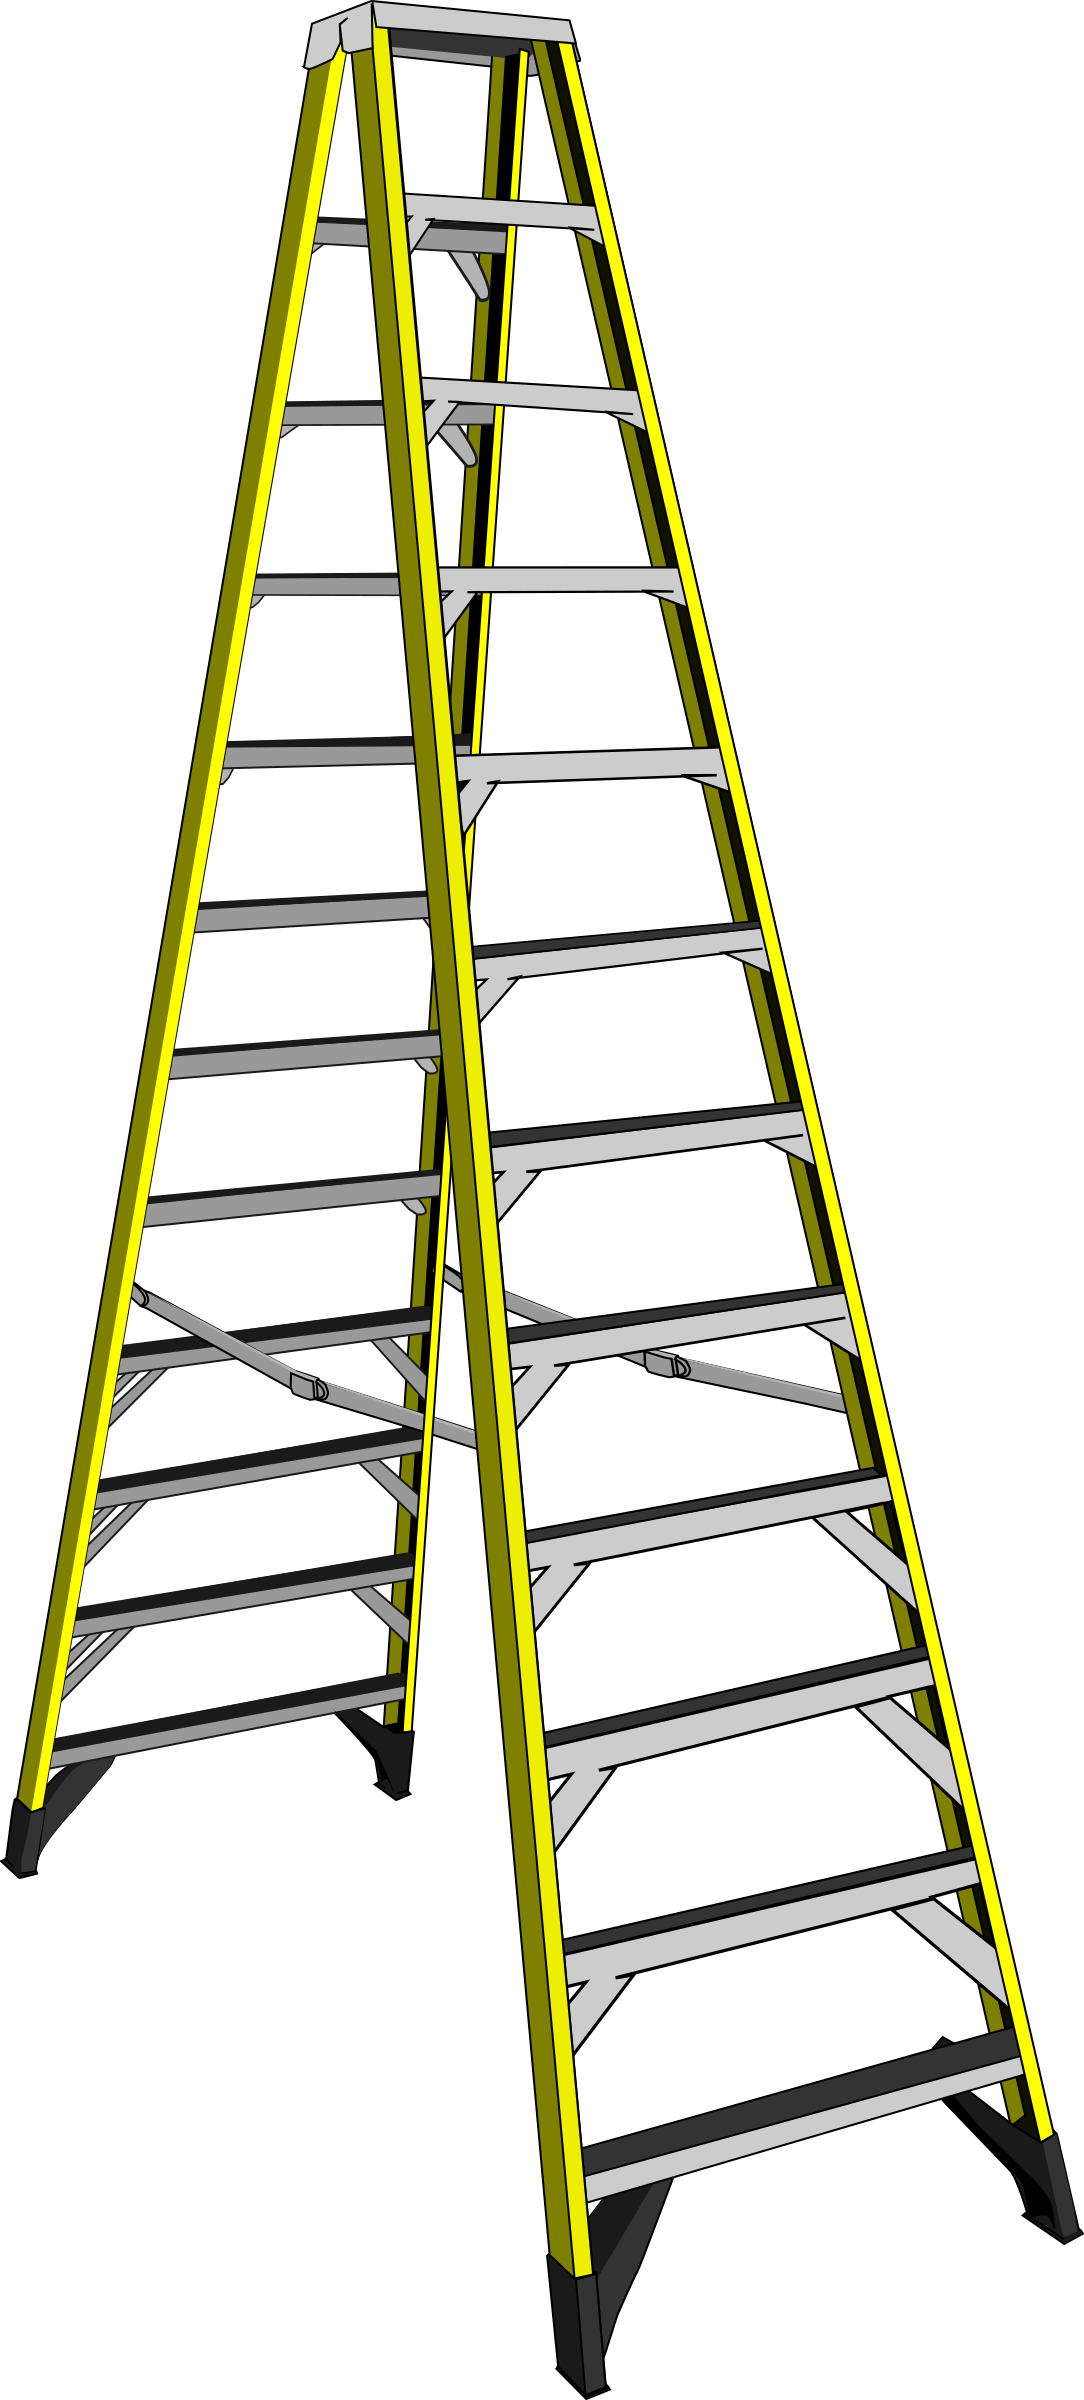 jpg library stock Clipart ladder. Large yellow big image.